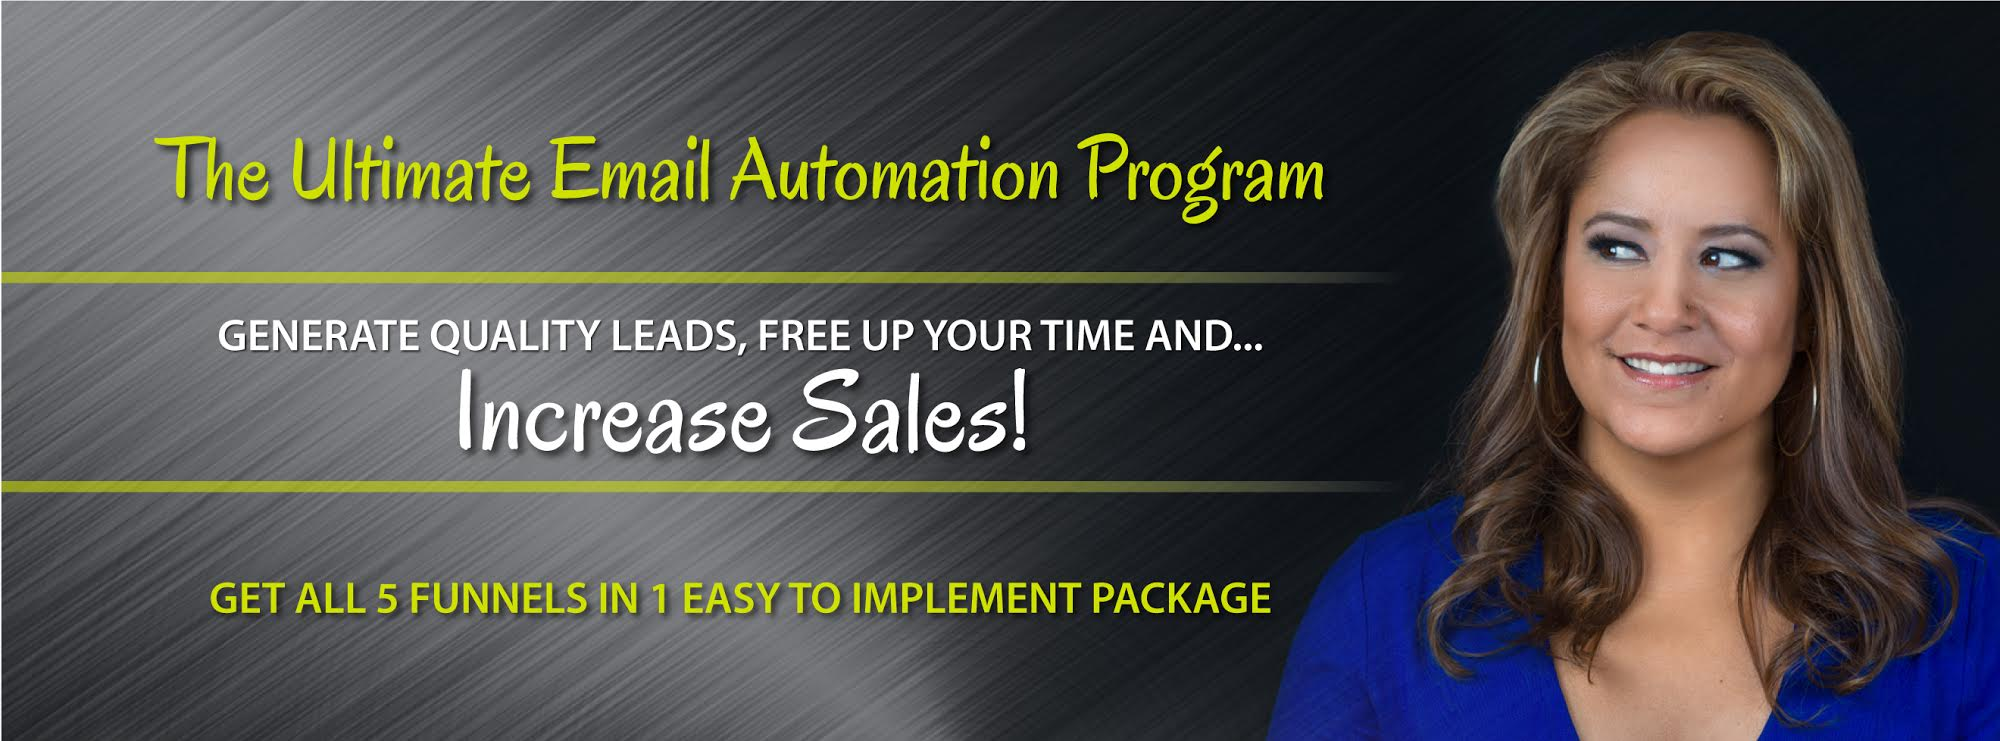 email-automation-made-easy-banner